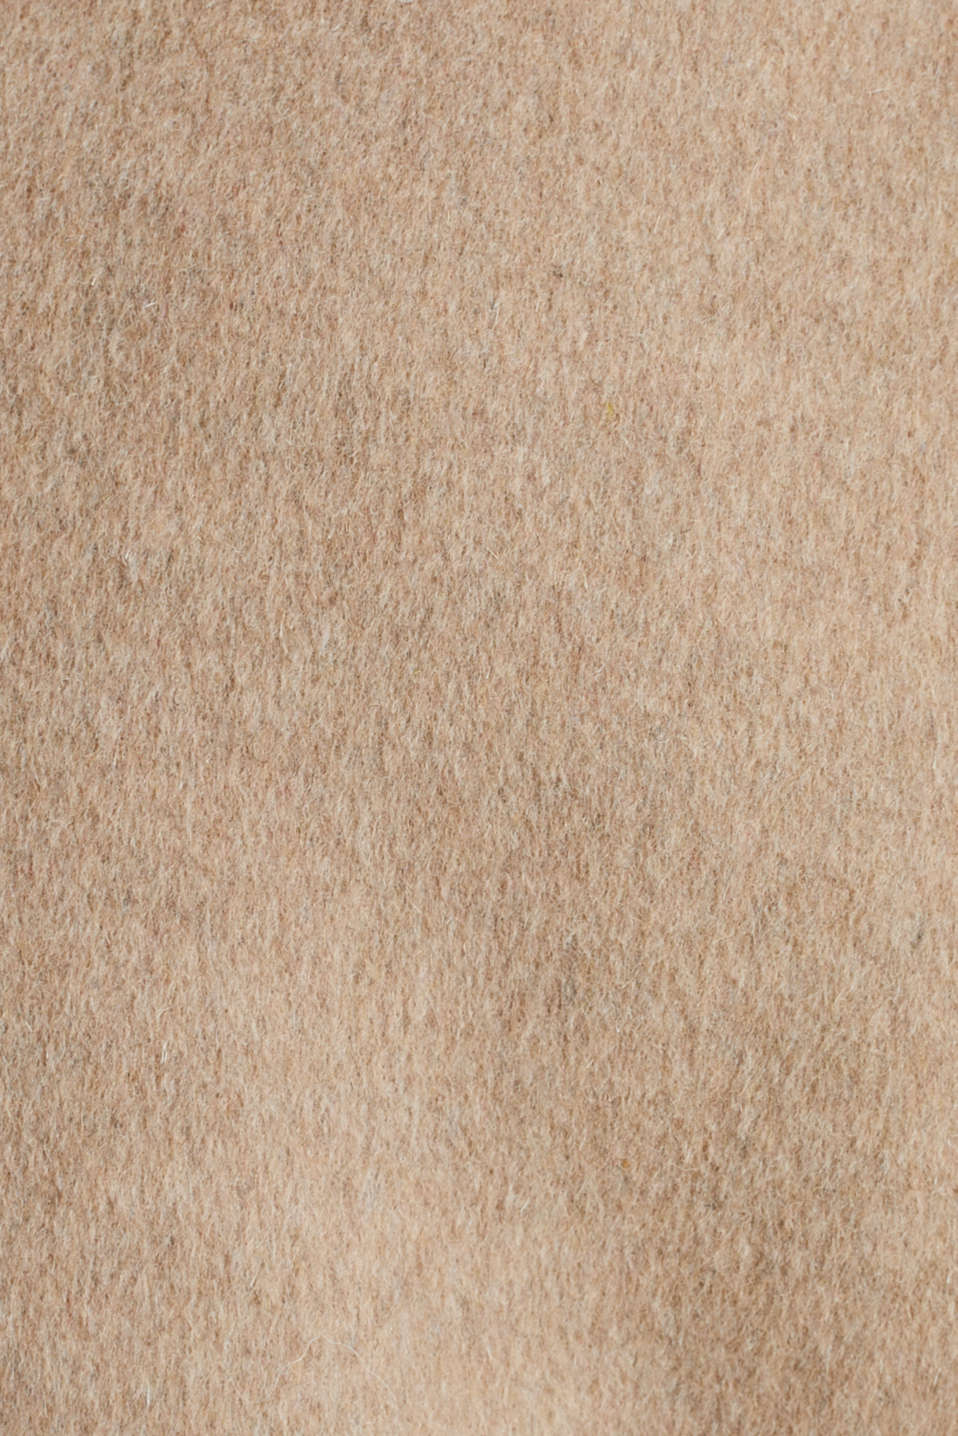 Made of blended wool: Coat with check details, BEIGE 5, detail image number 3